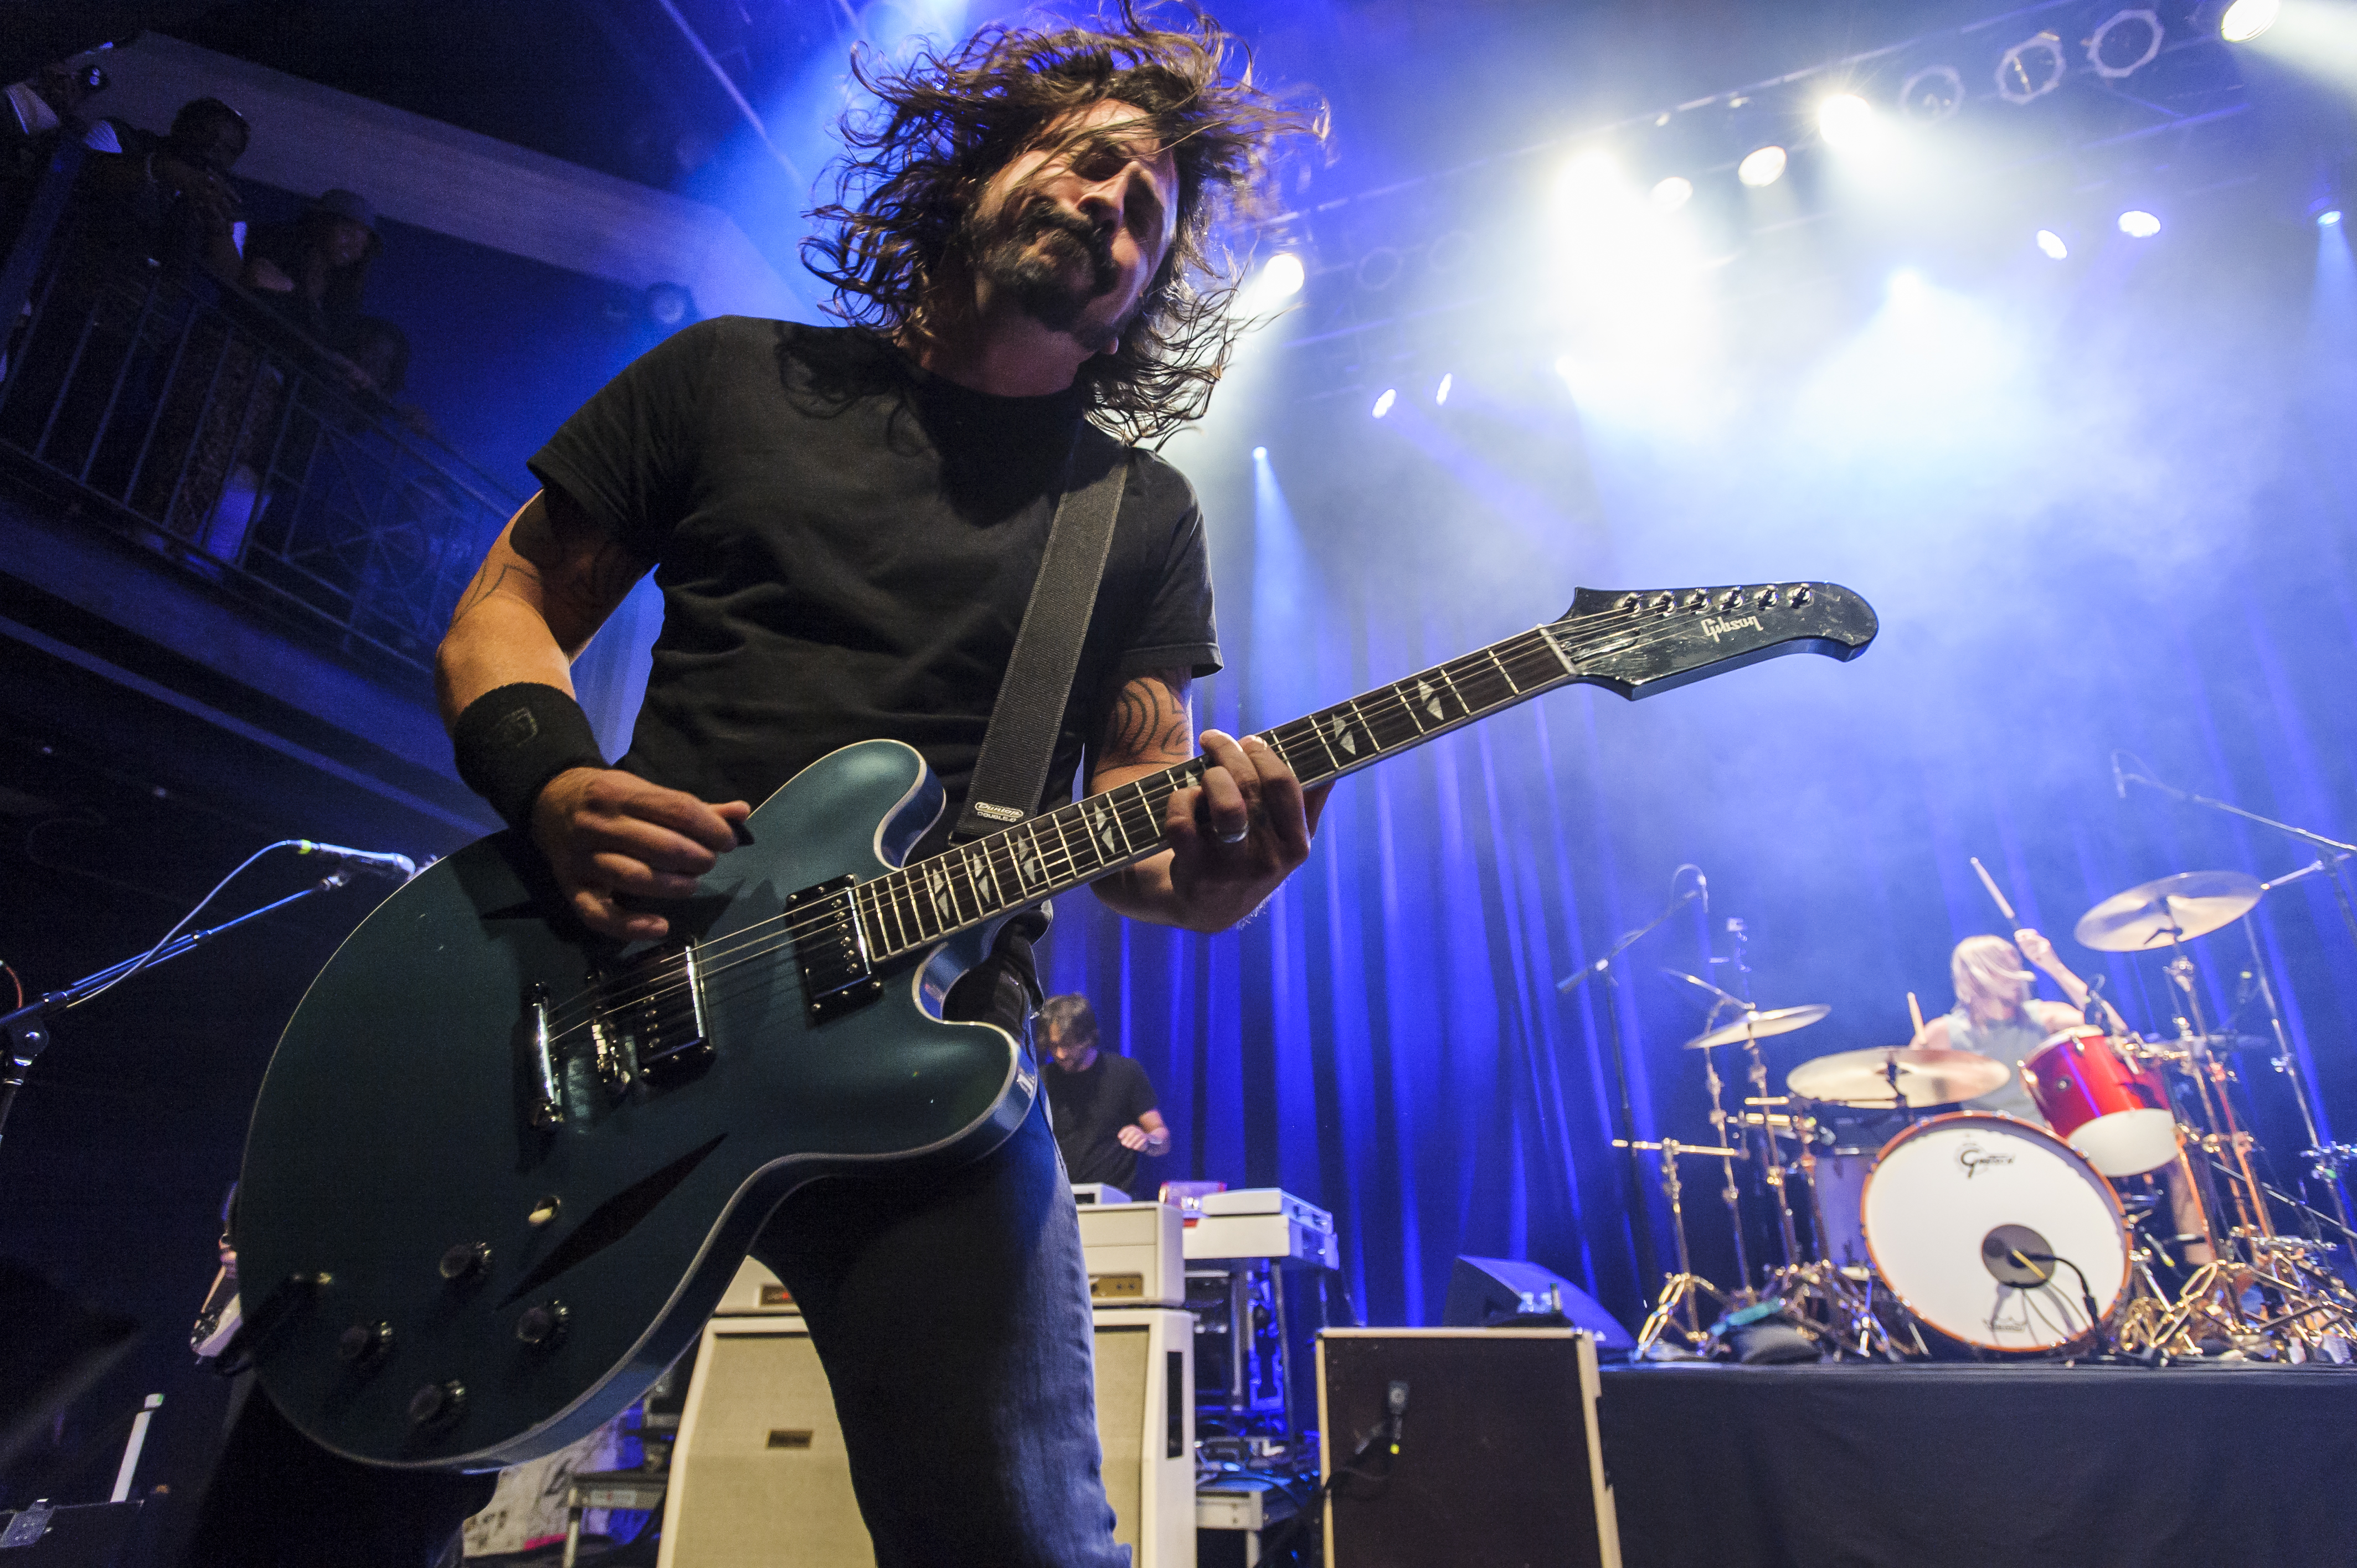 Dave Grohl of the Foo Fighters performs at the 9:30 Club in Washington D.C. as part of the birthday celebration for Big Tony of Trouble Funk.